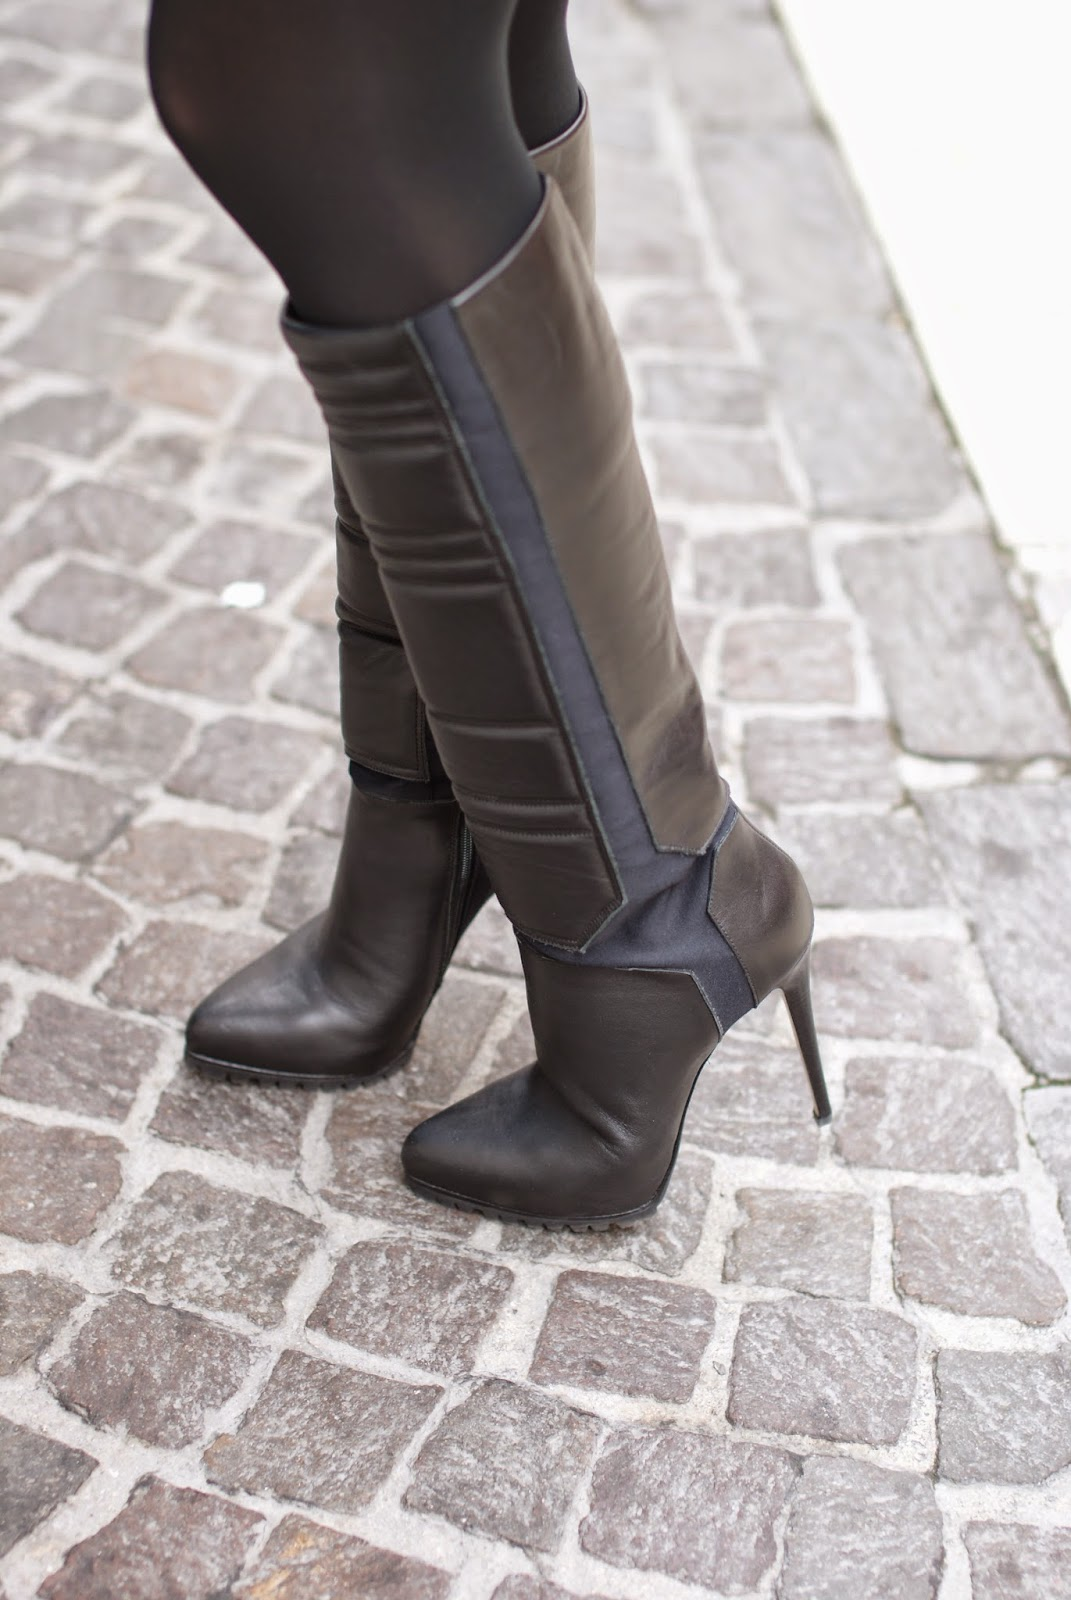 Le Silla boots, Fashion and Cookies, fashion blogger